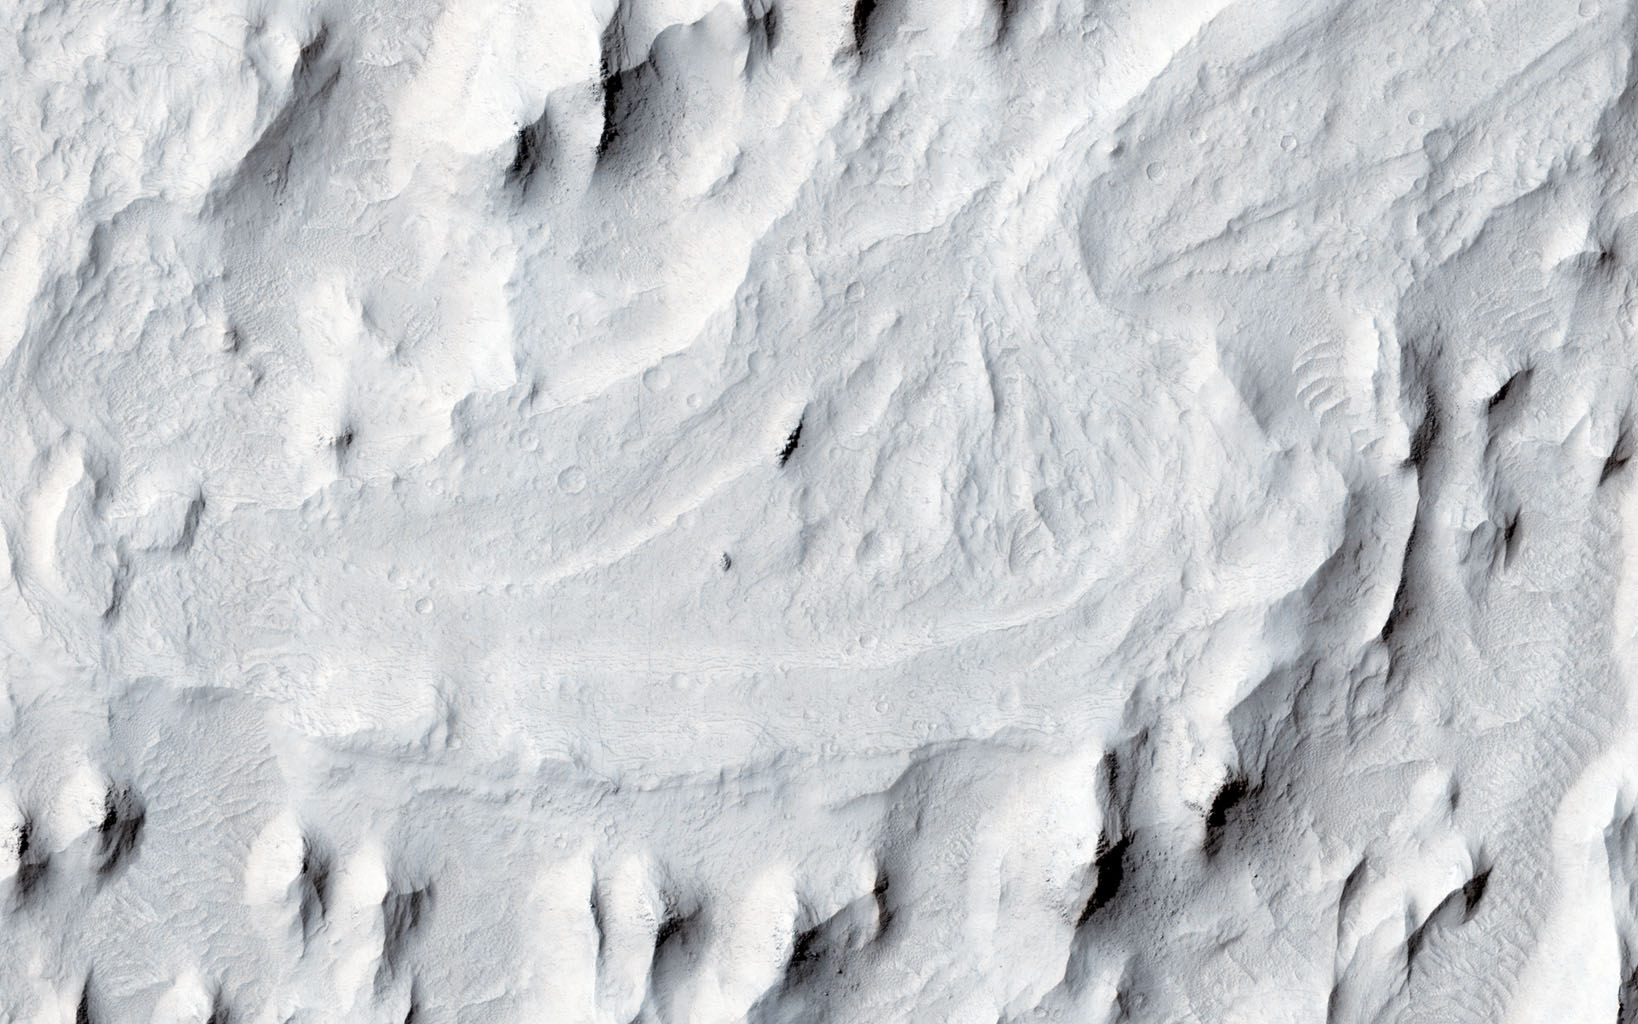 In this image from NASA's Mars Reconnaissance Orbiter spacecraft, an ancient sinuous meandering river system is surrounded by features called 'yardangs.' The yardangs are the ridge-like landforms that align approximately north-south.